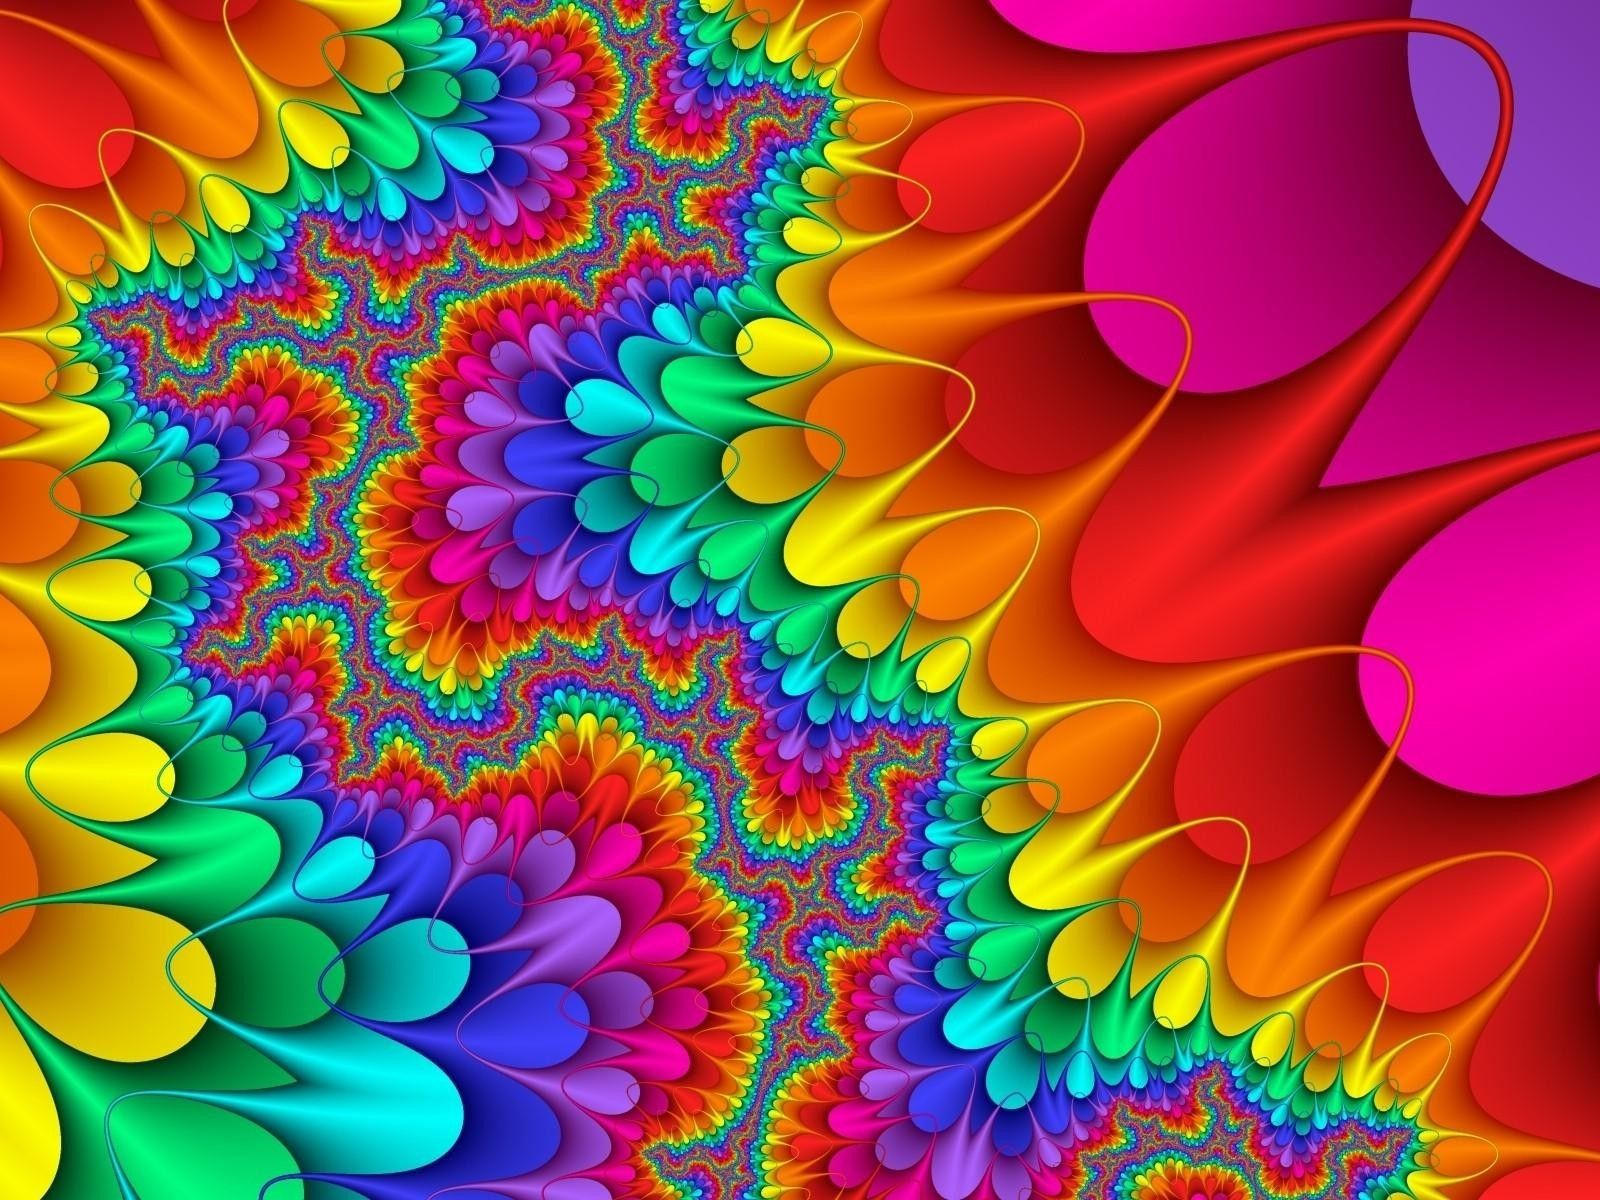 colorful images Download free Cute colourful hd